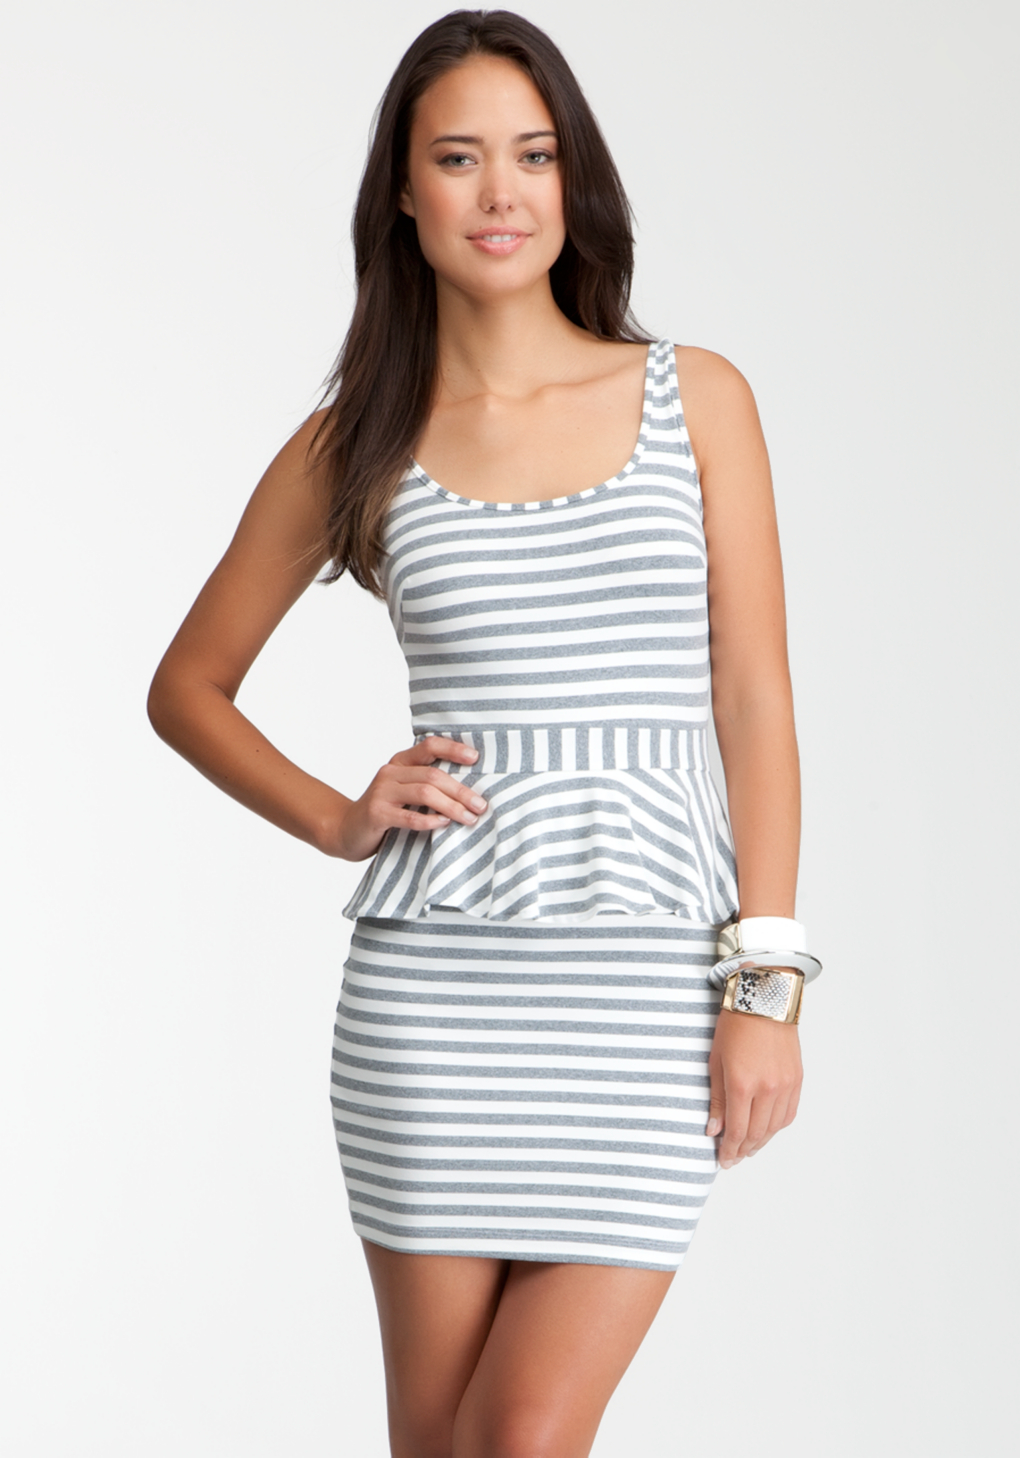 Get the best deals on stripe white bebe striped dress and save up to 70% off at Poshmark now! Whatever you're shopping for, we've got it.